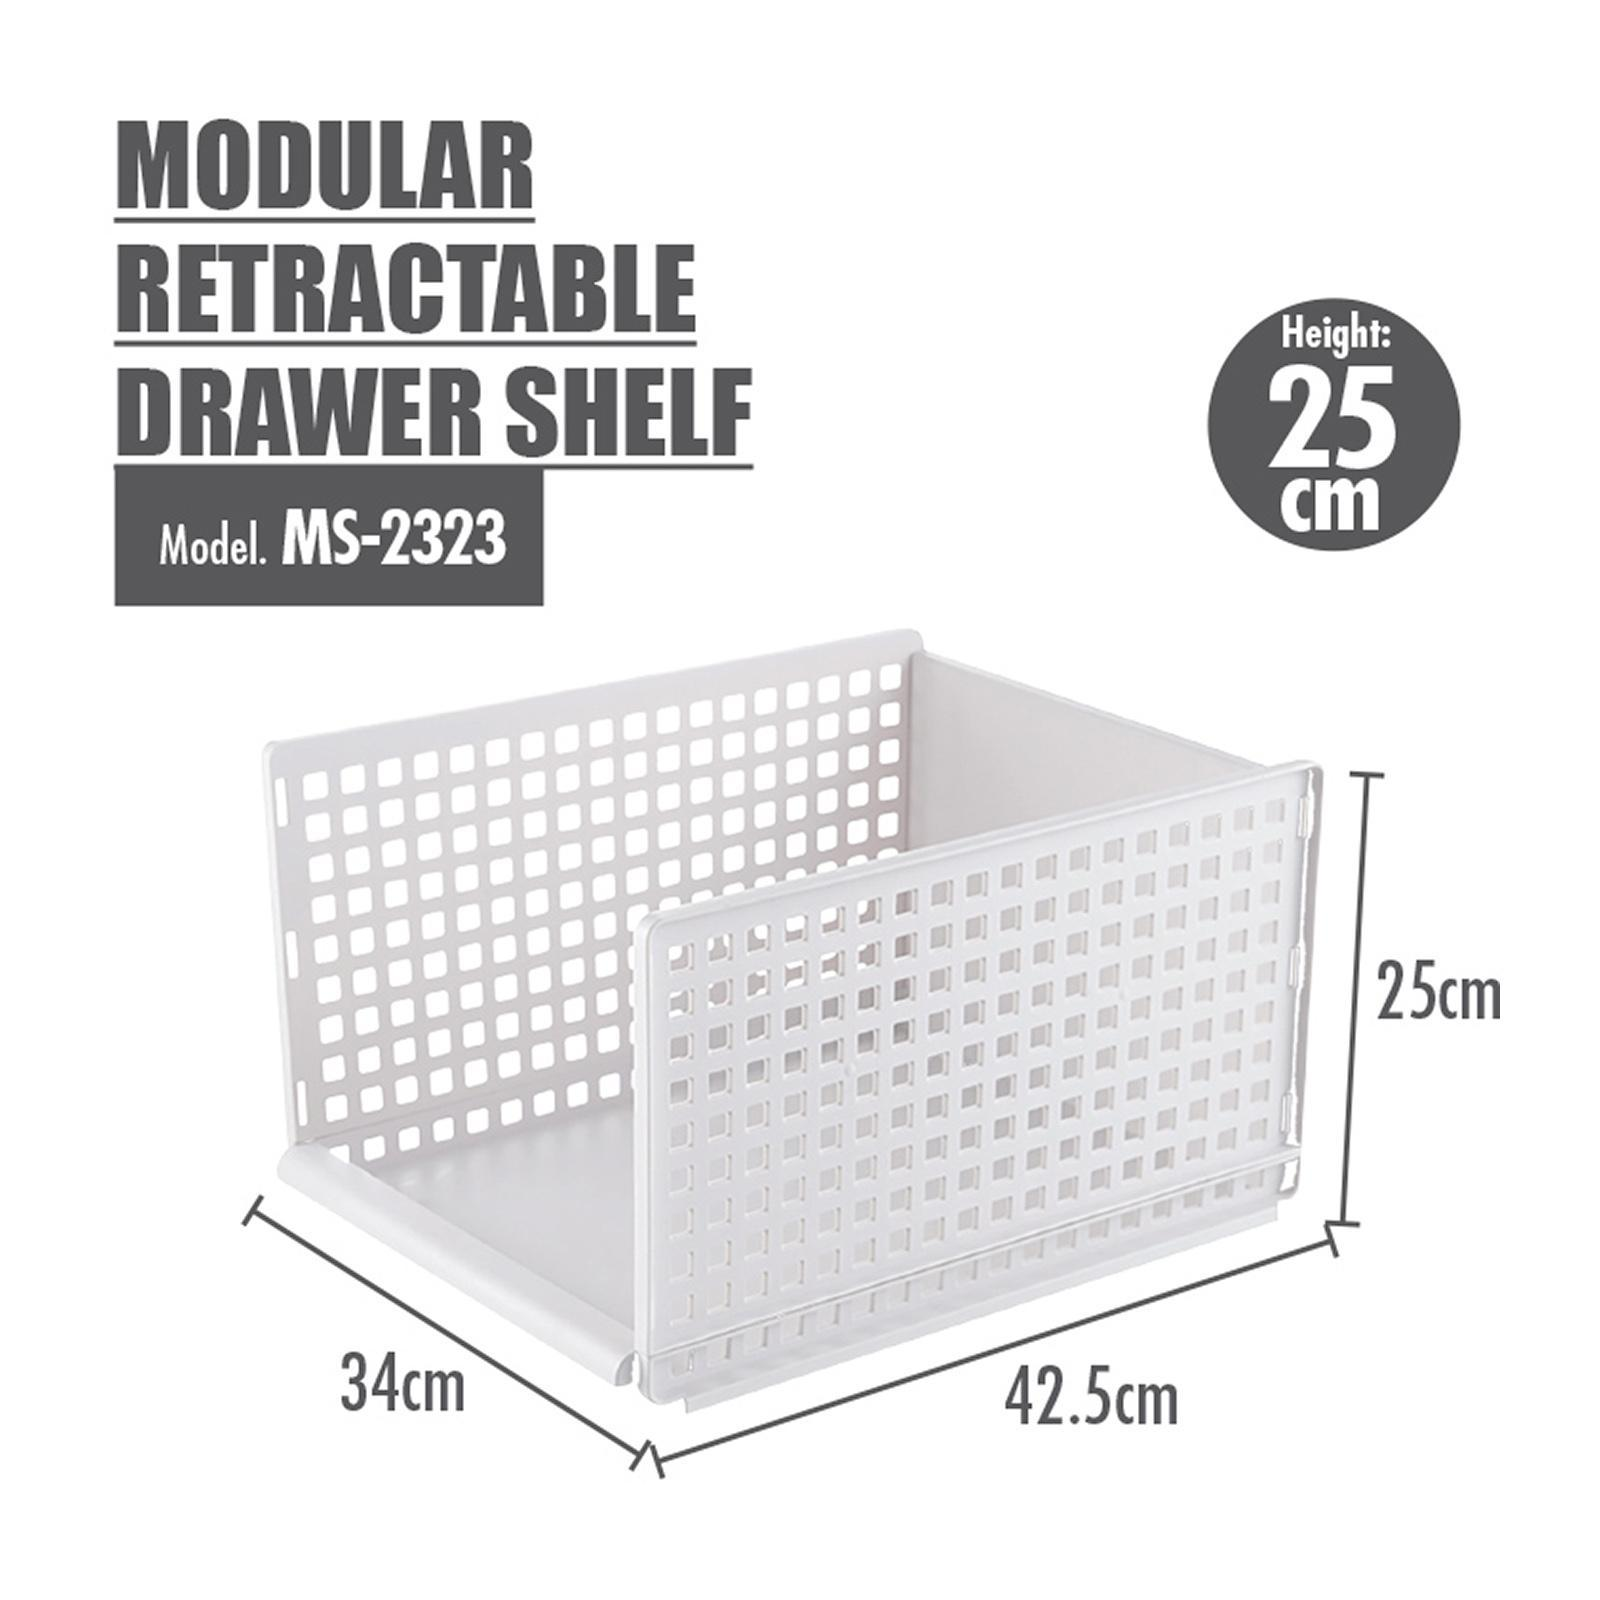 HOUZE Modular Retractable Drawer Shelf (Height: 25 CM)